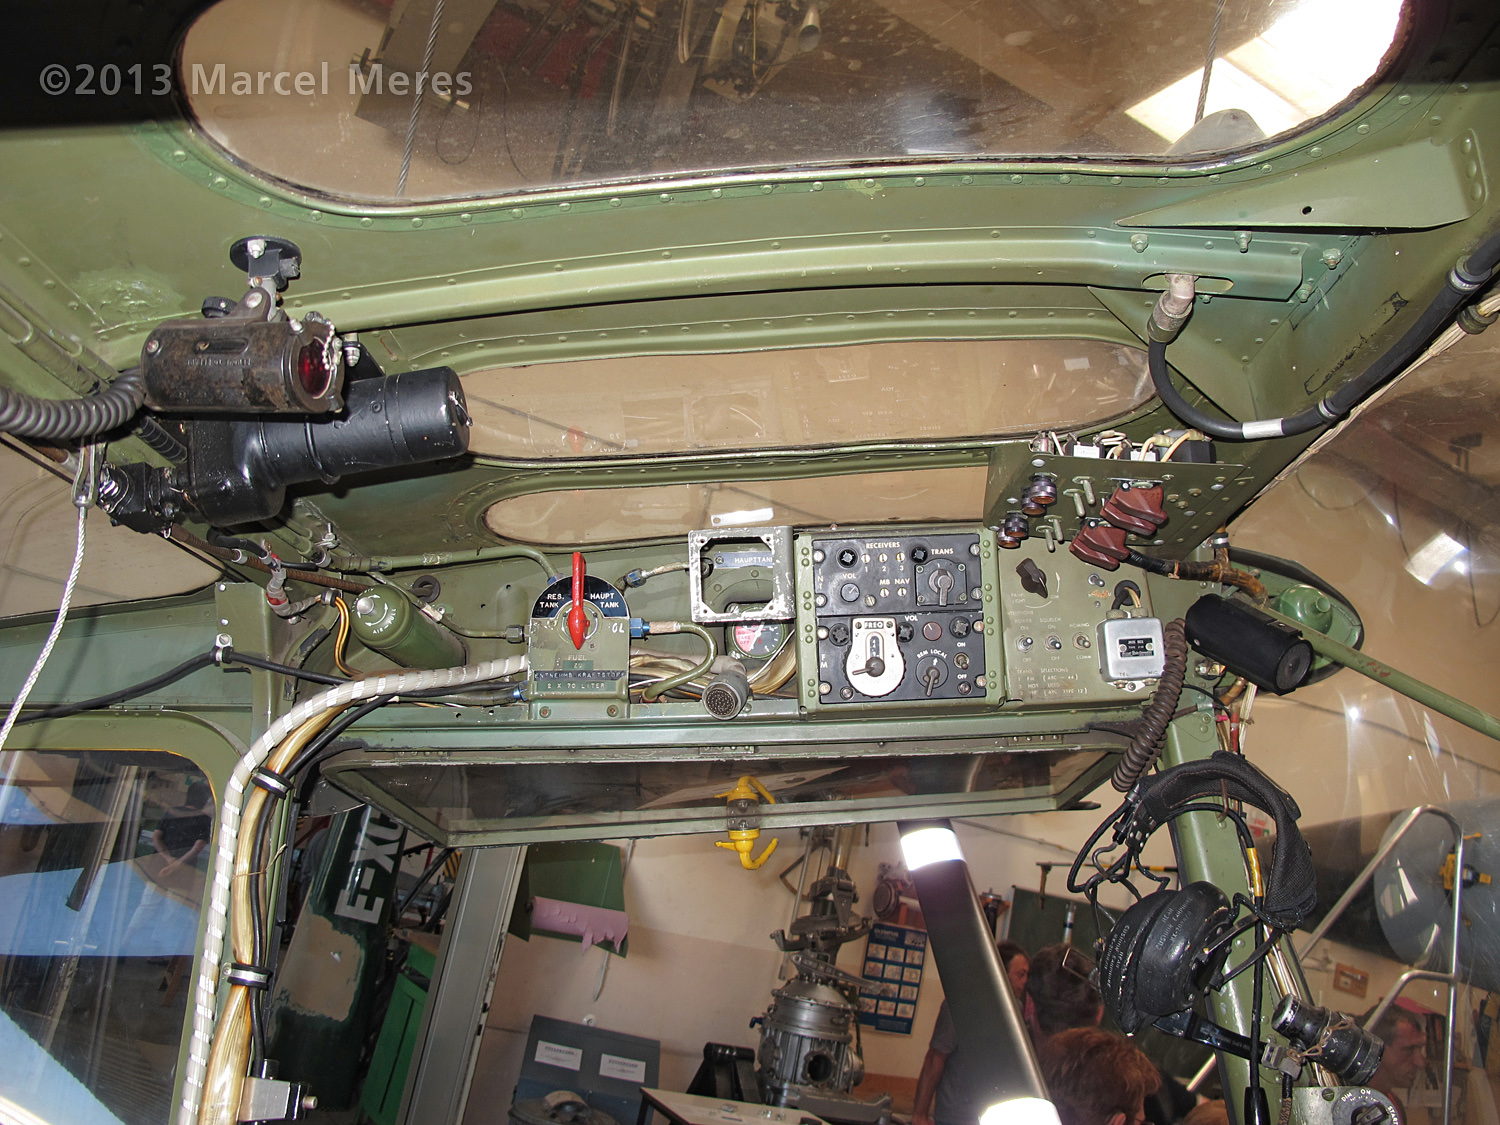 Cessna O-1 / L-19 Bird Dog, Austrian army, Cockpit roof